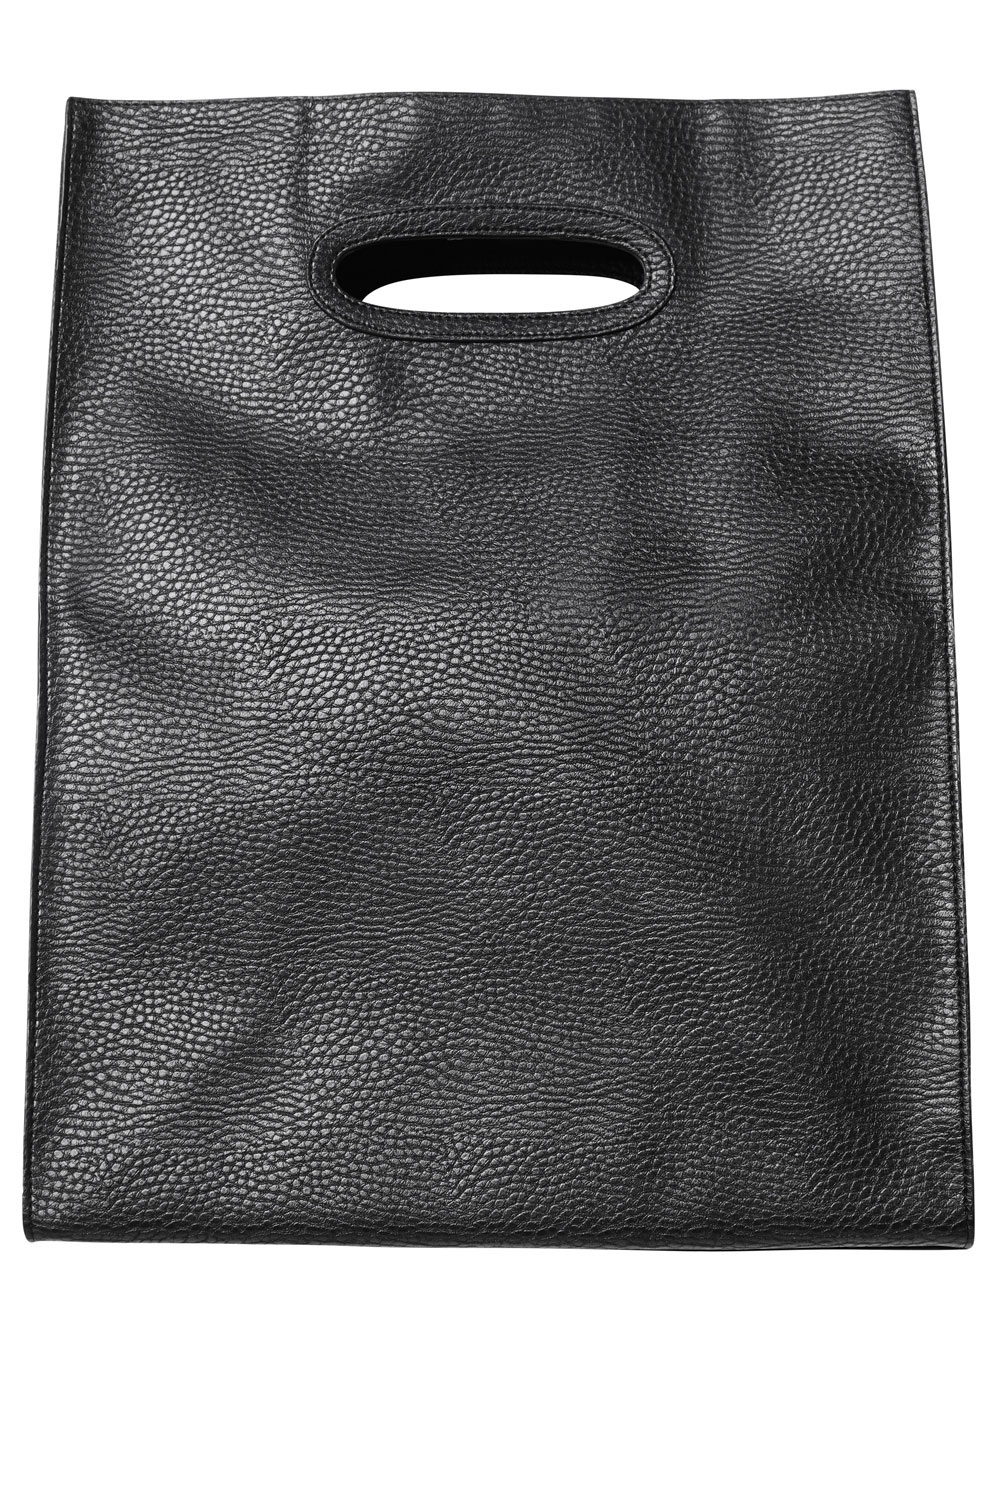 2c77a5f7b5c ... leather sold f5f23 b7531; free shipping mulberry blossom purse forum  mulberry c57cd 6c494